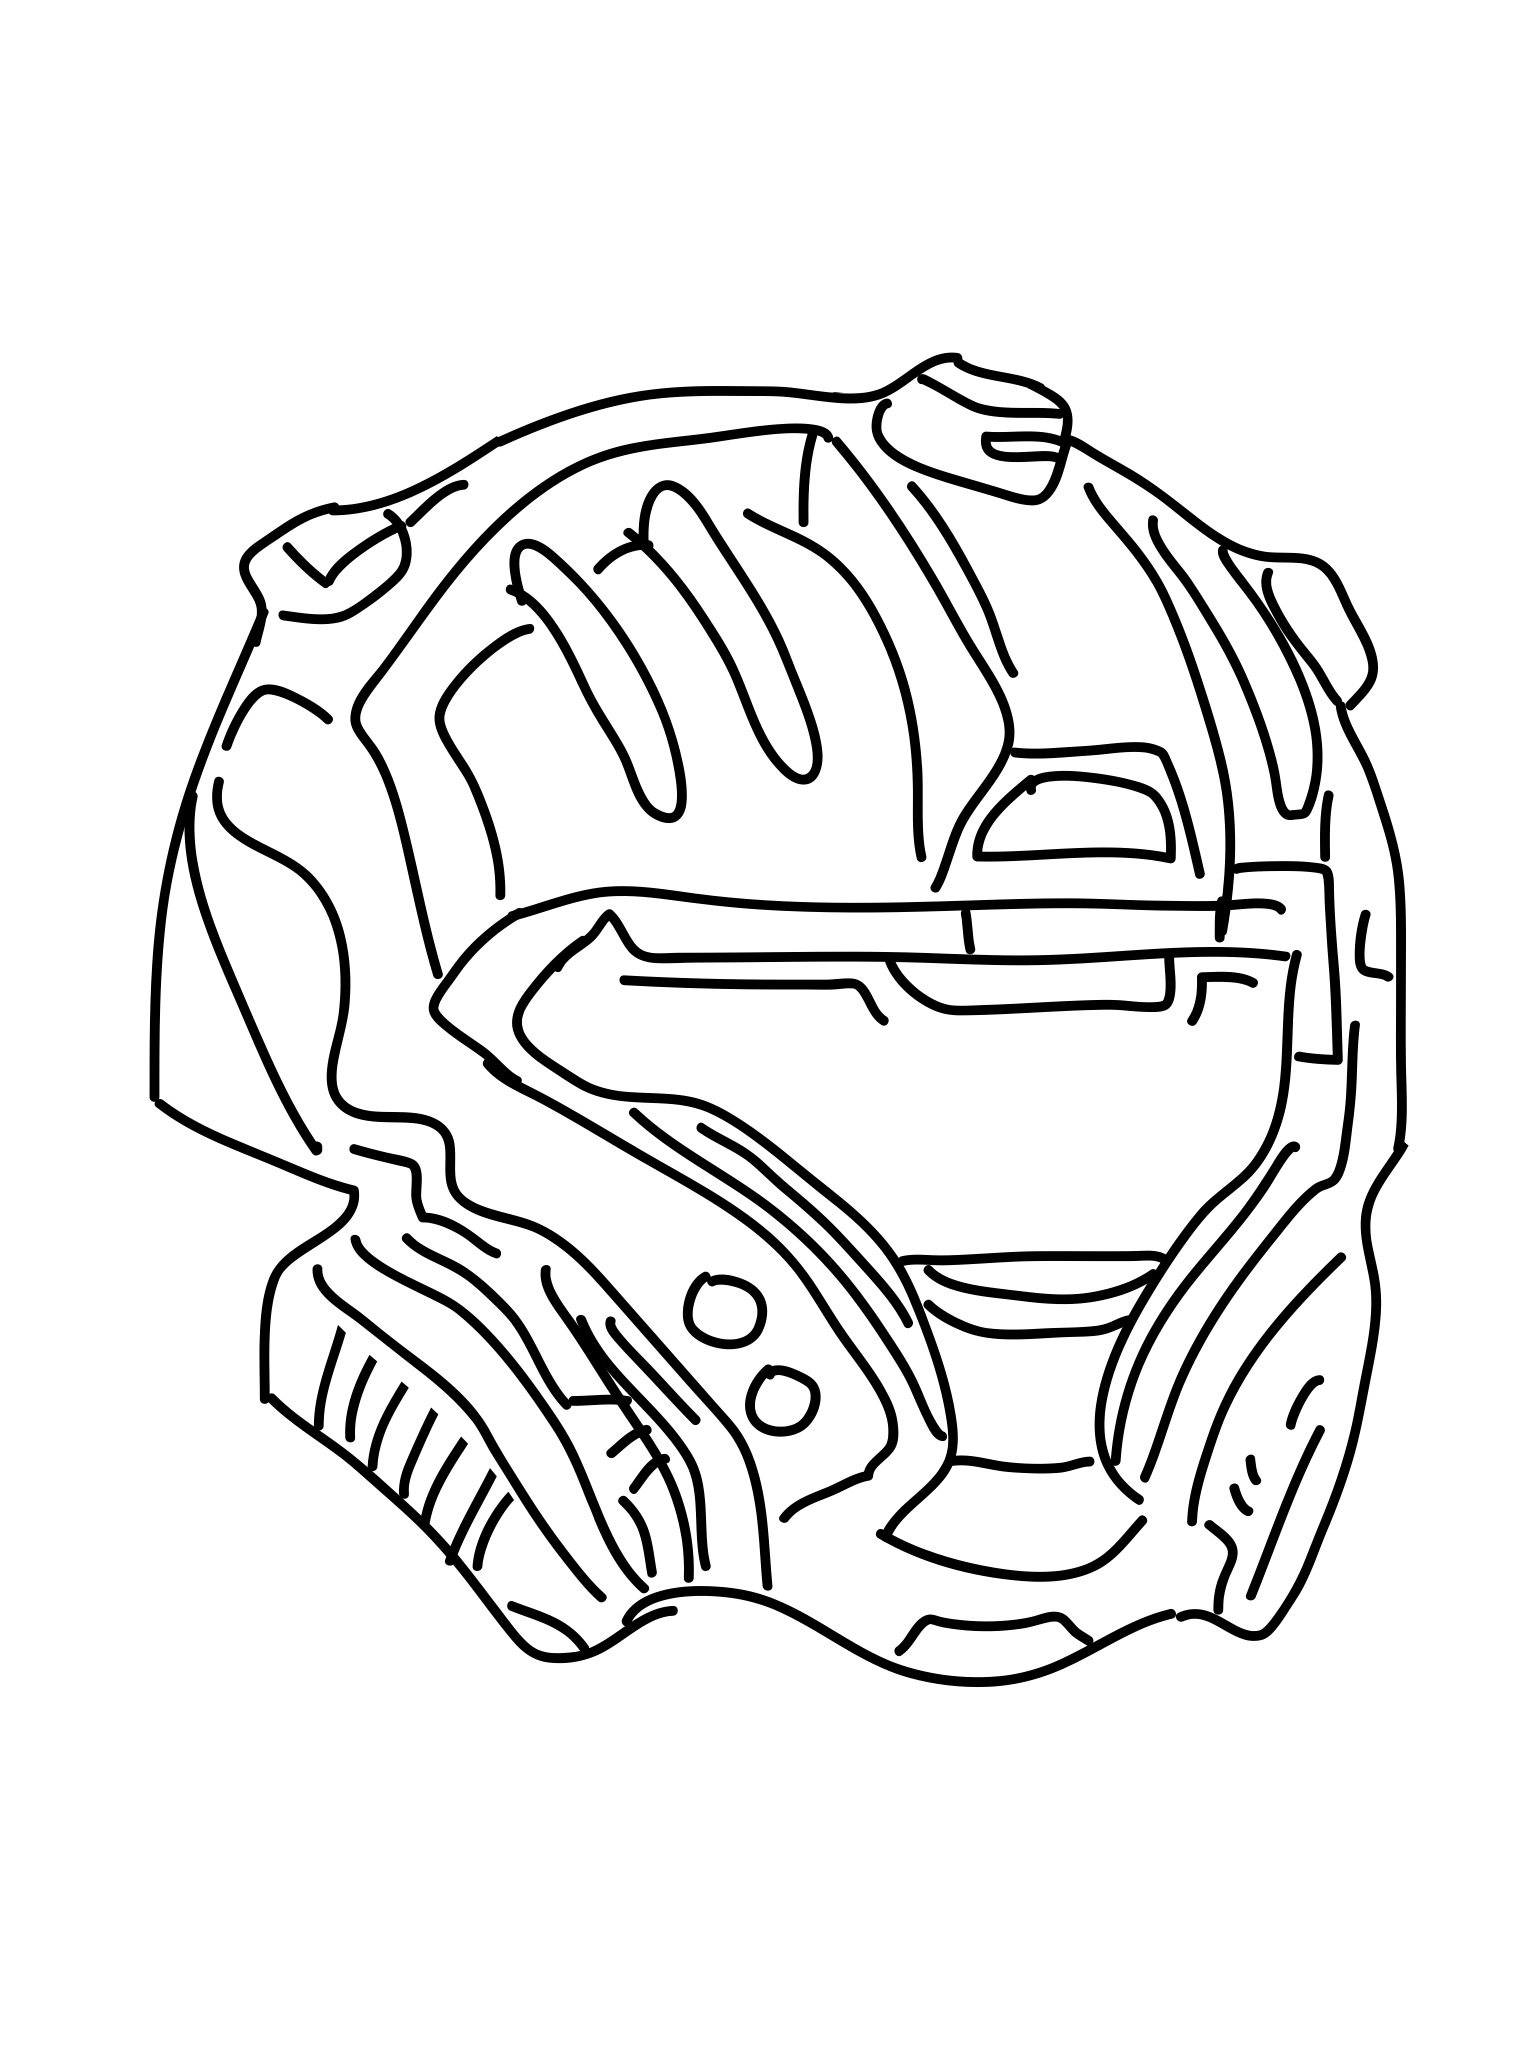 helmet coloring pages halo 4 helmets coloring page free coloring pages online helmet pages coloring